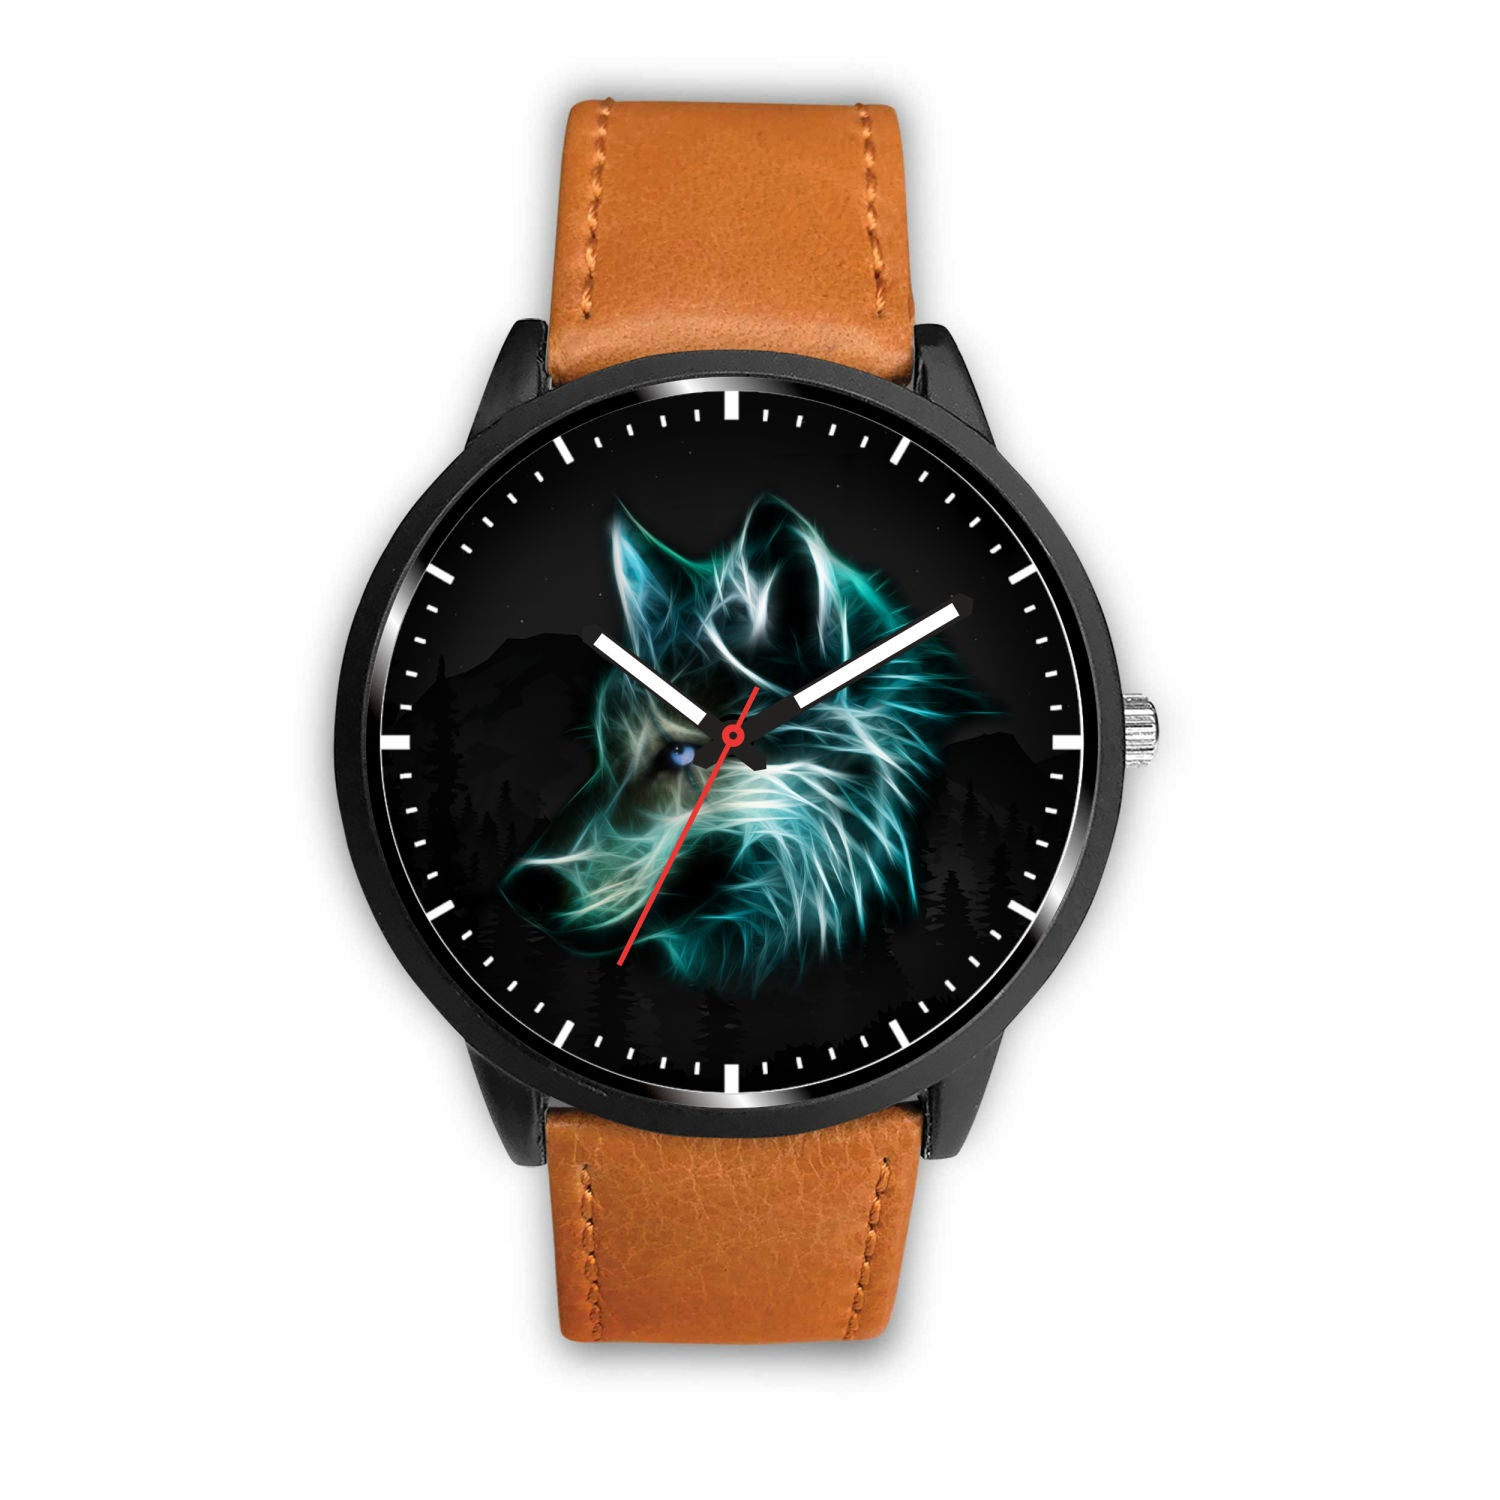 3D Neon Wolf Watch - Stainless steel back with leather/ stainless steel band 005 - designfullprint